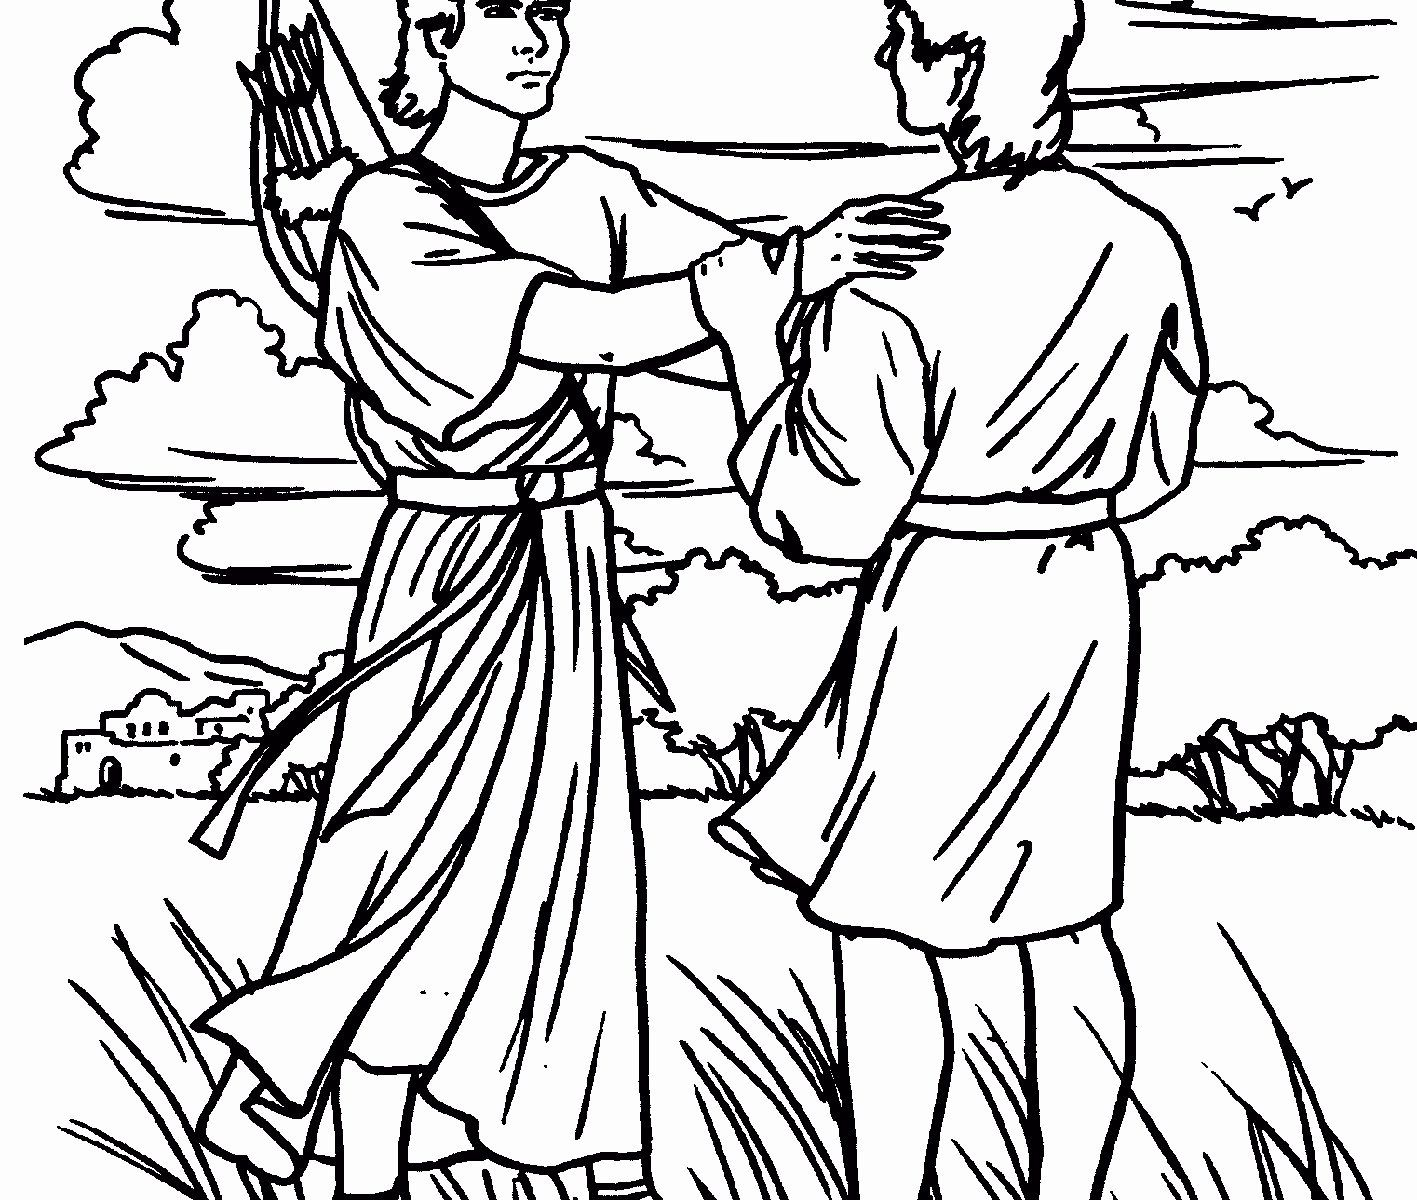 David And Jonathan Coloring Page Lovely Creative Picture Of David And Jonathan Coloring Page David And Jonathan Coloring Pages David And Jonathan Friendship